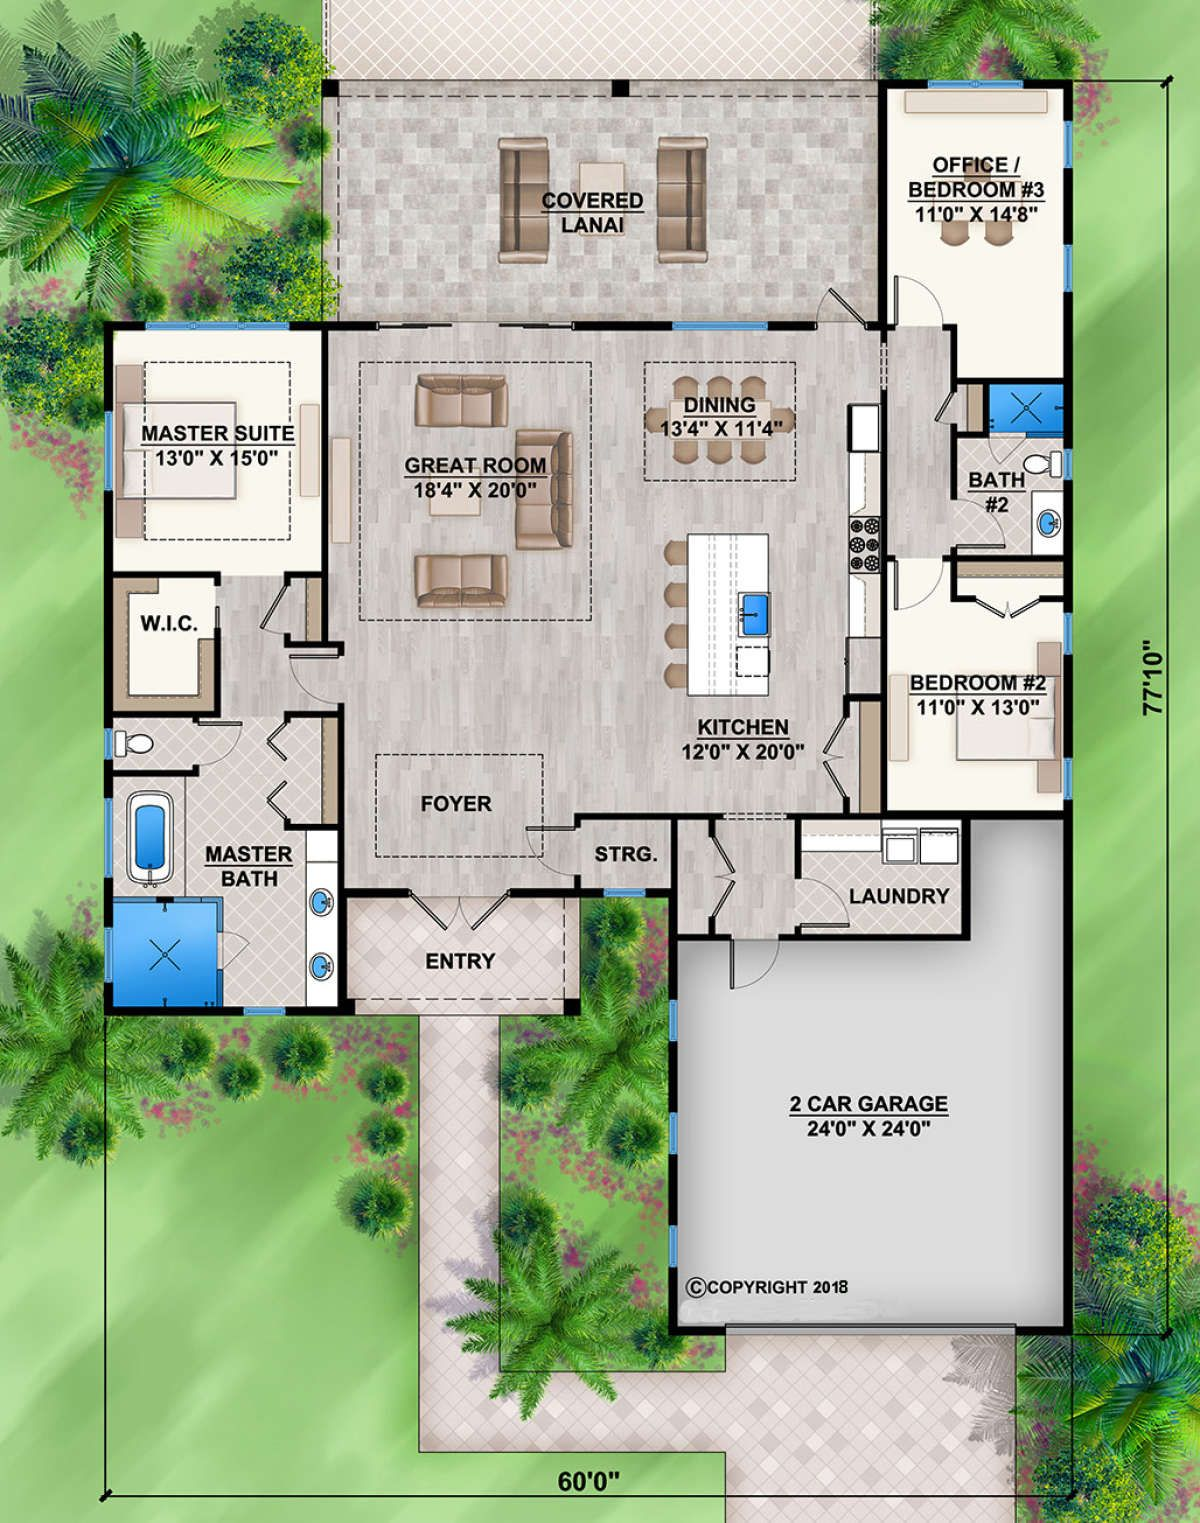 House Plan 207 00070 Florida Plan 2 449 Square Feet 3 Bedrooms 2 Bathrooms Florida House Plans House Construction Plan House Plans